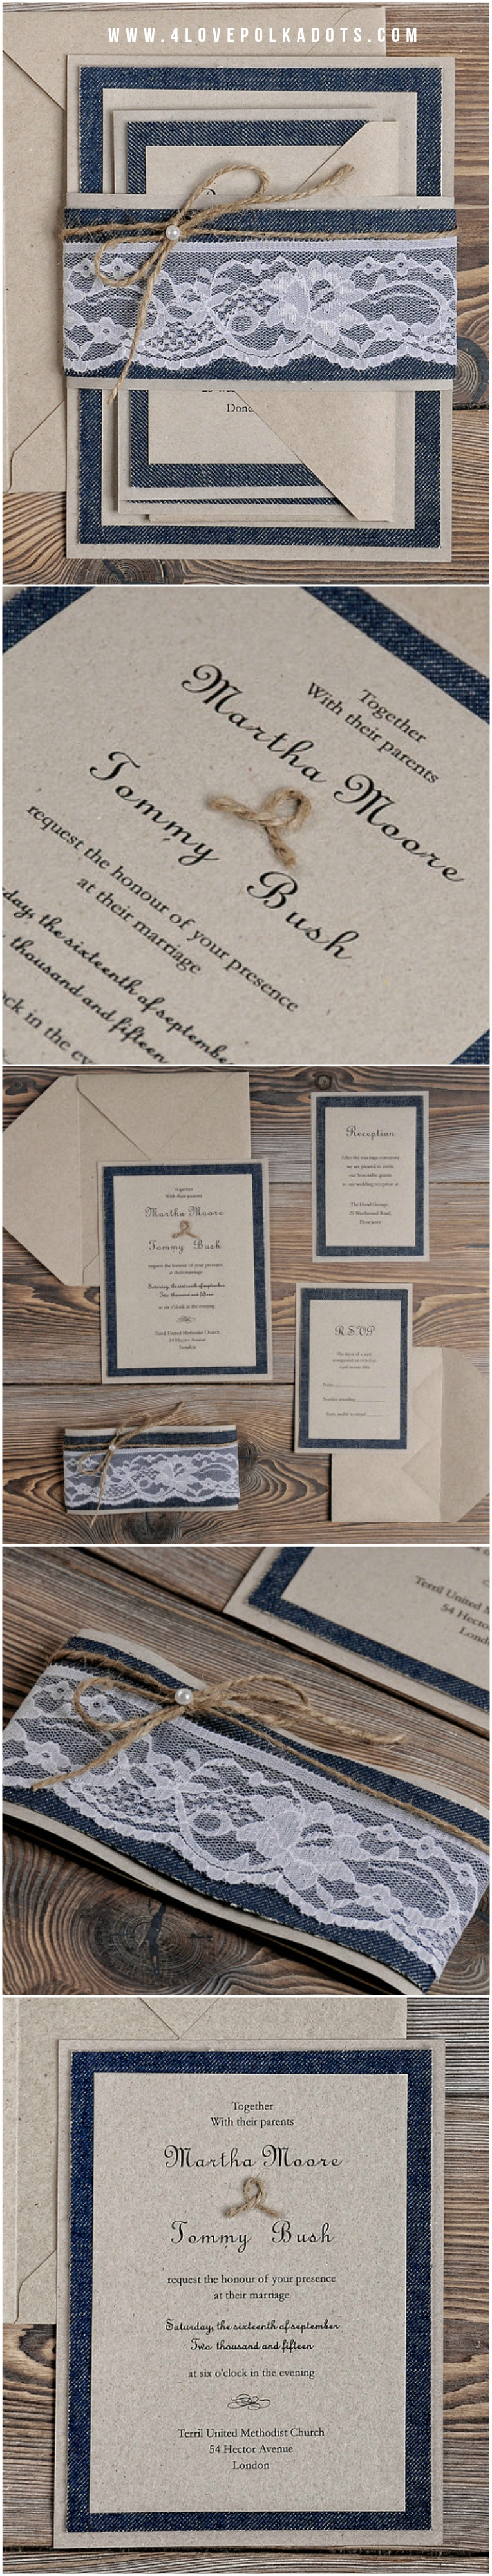 Jeans u0026 Lace Wedding Invitation eco